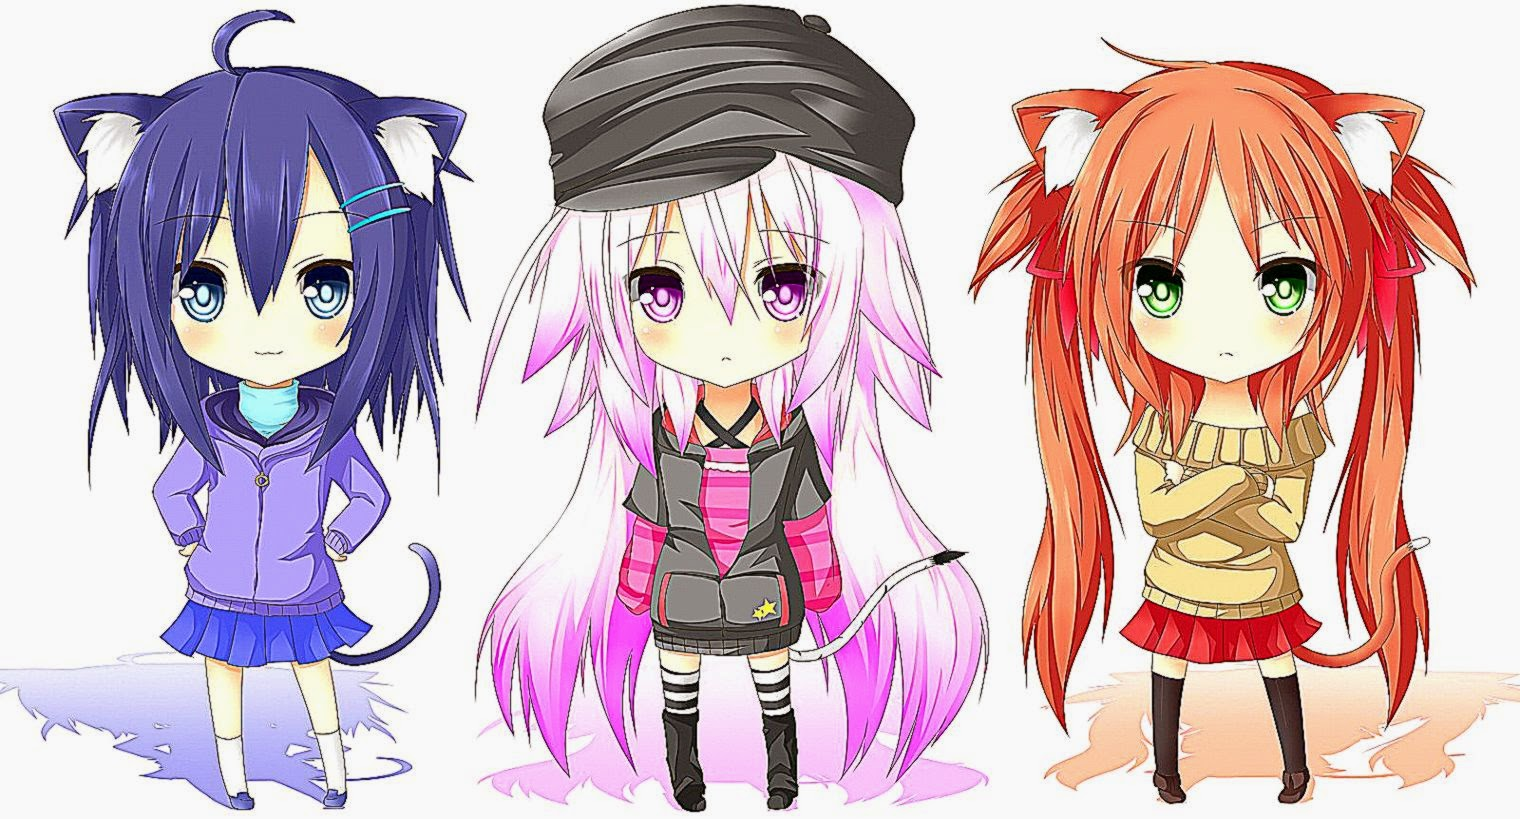 Anime Girl Cute Chibi Images Hd Wallpaper Important Wallpapers 1520x819